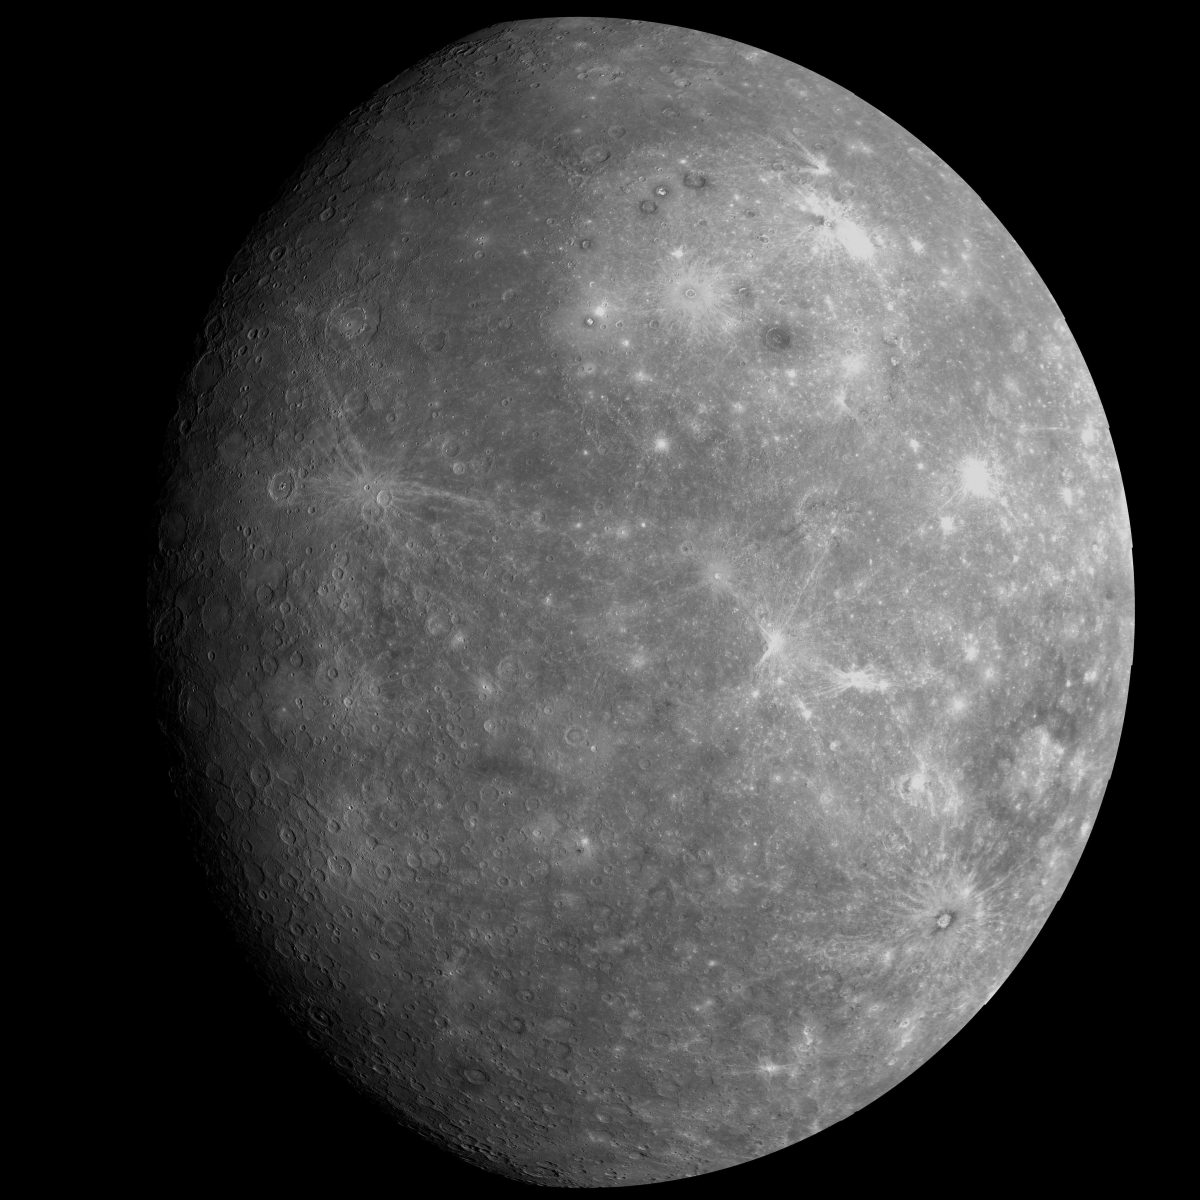 Astronomy; The Planet Mercury - Facts and Photos